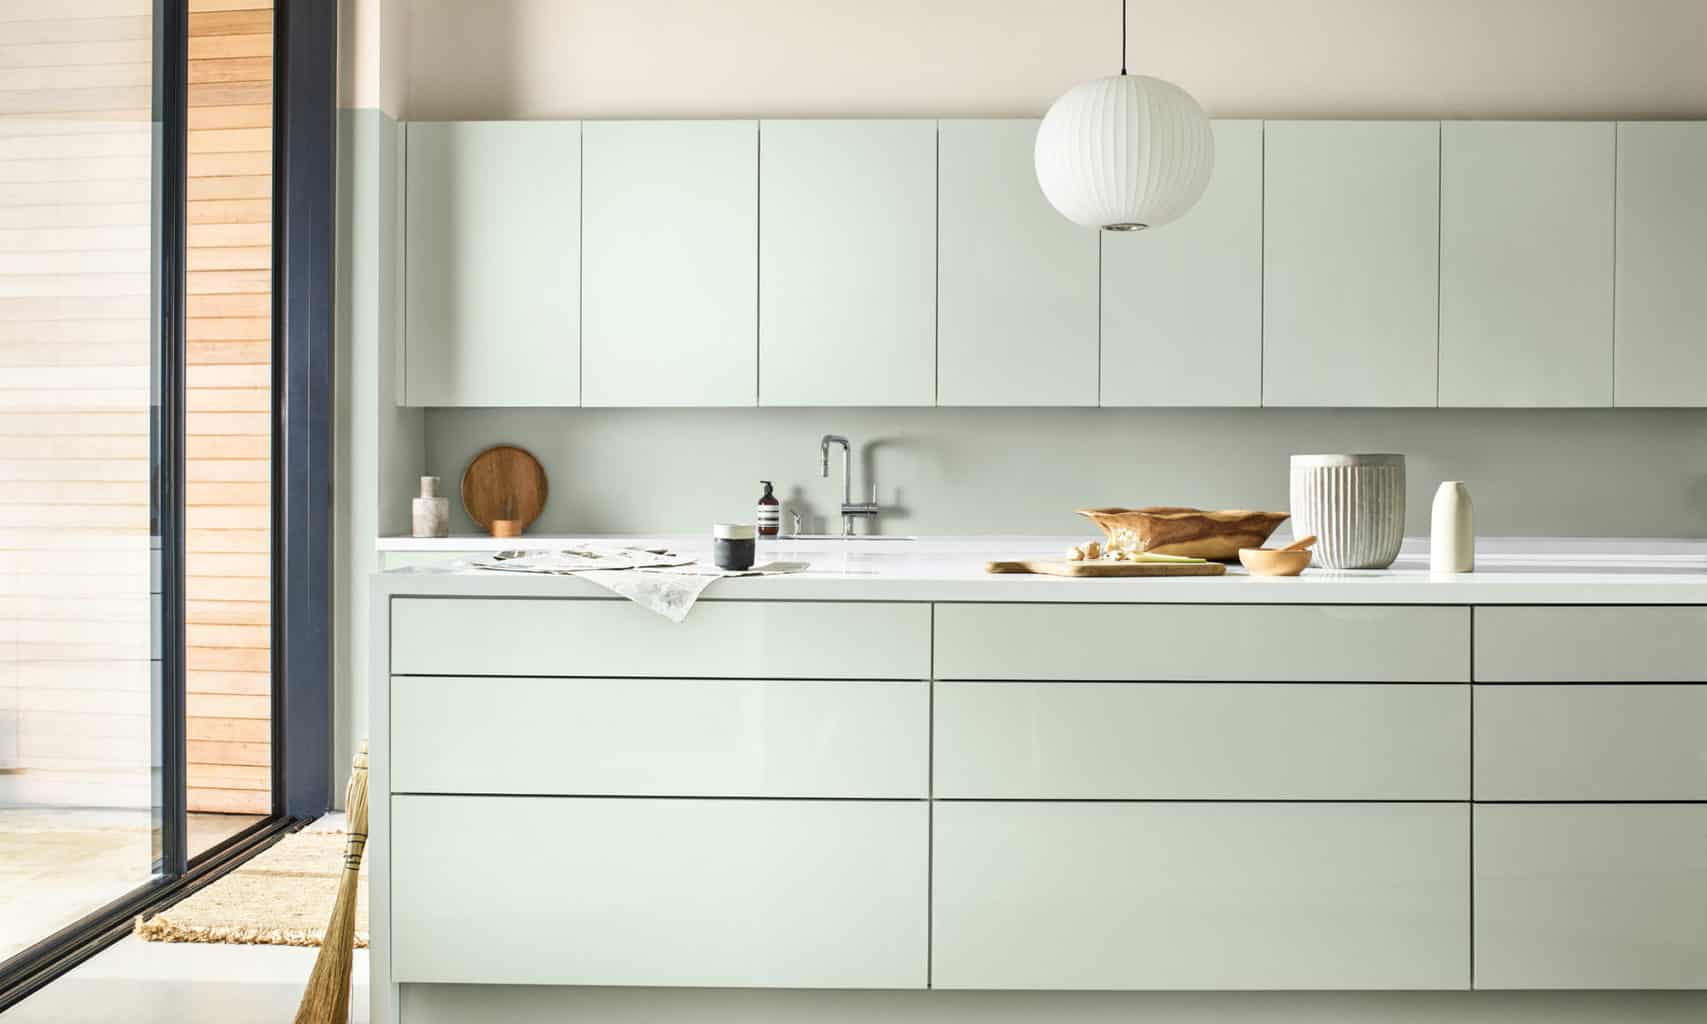 AkzoNobel Color of the Year for 2020, Tranquil Dawn, kitchen inspiration